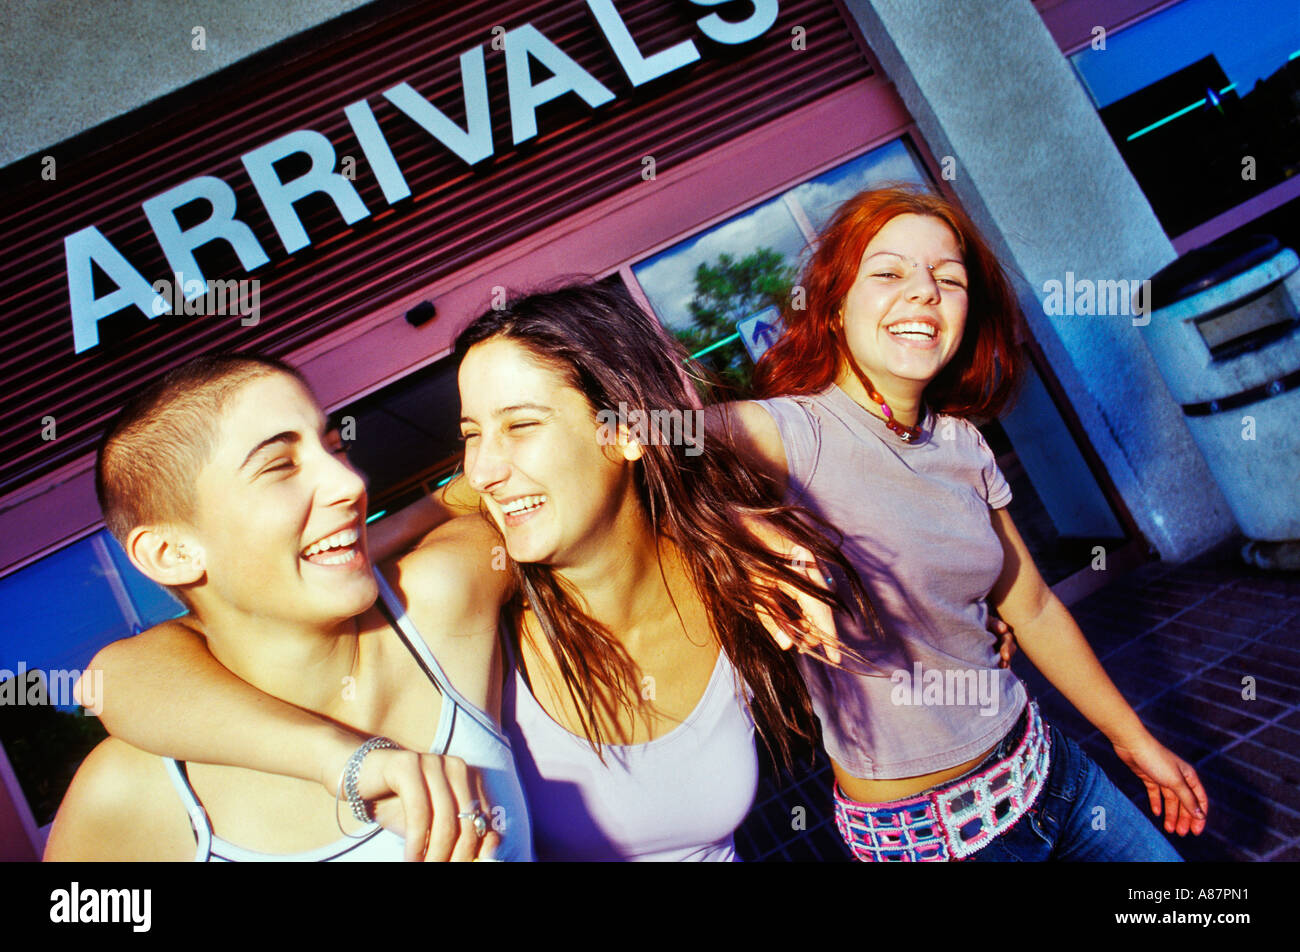 Girls arriving at the airport in Ibiza. - Stock Image